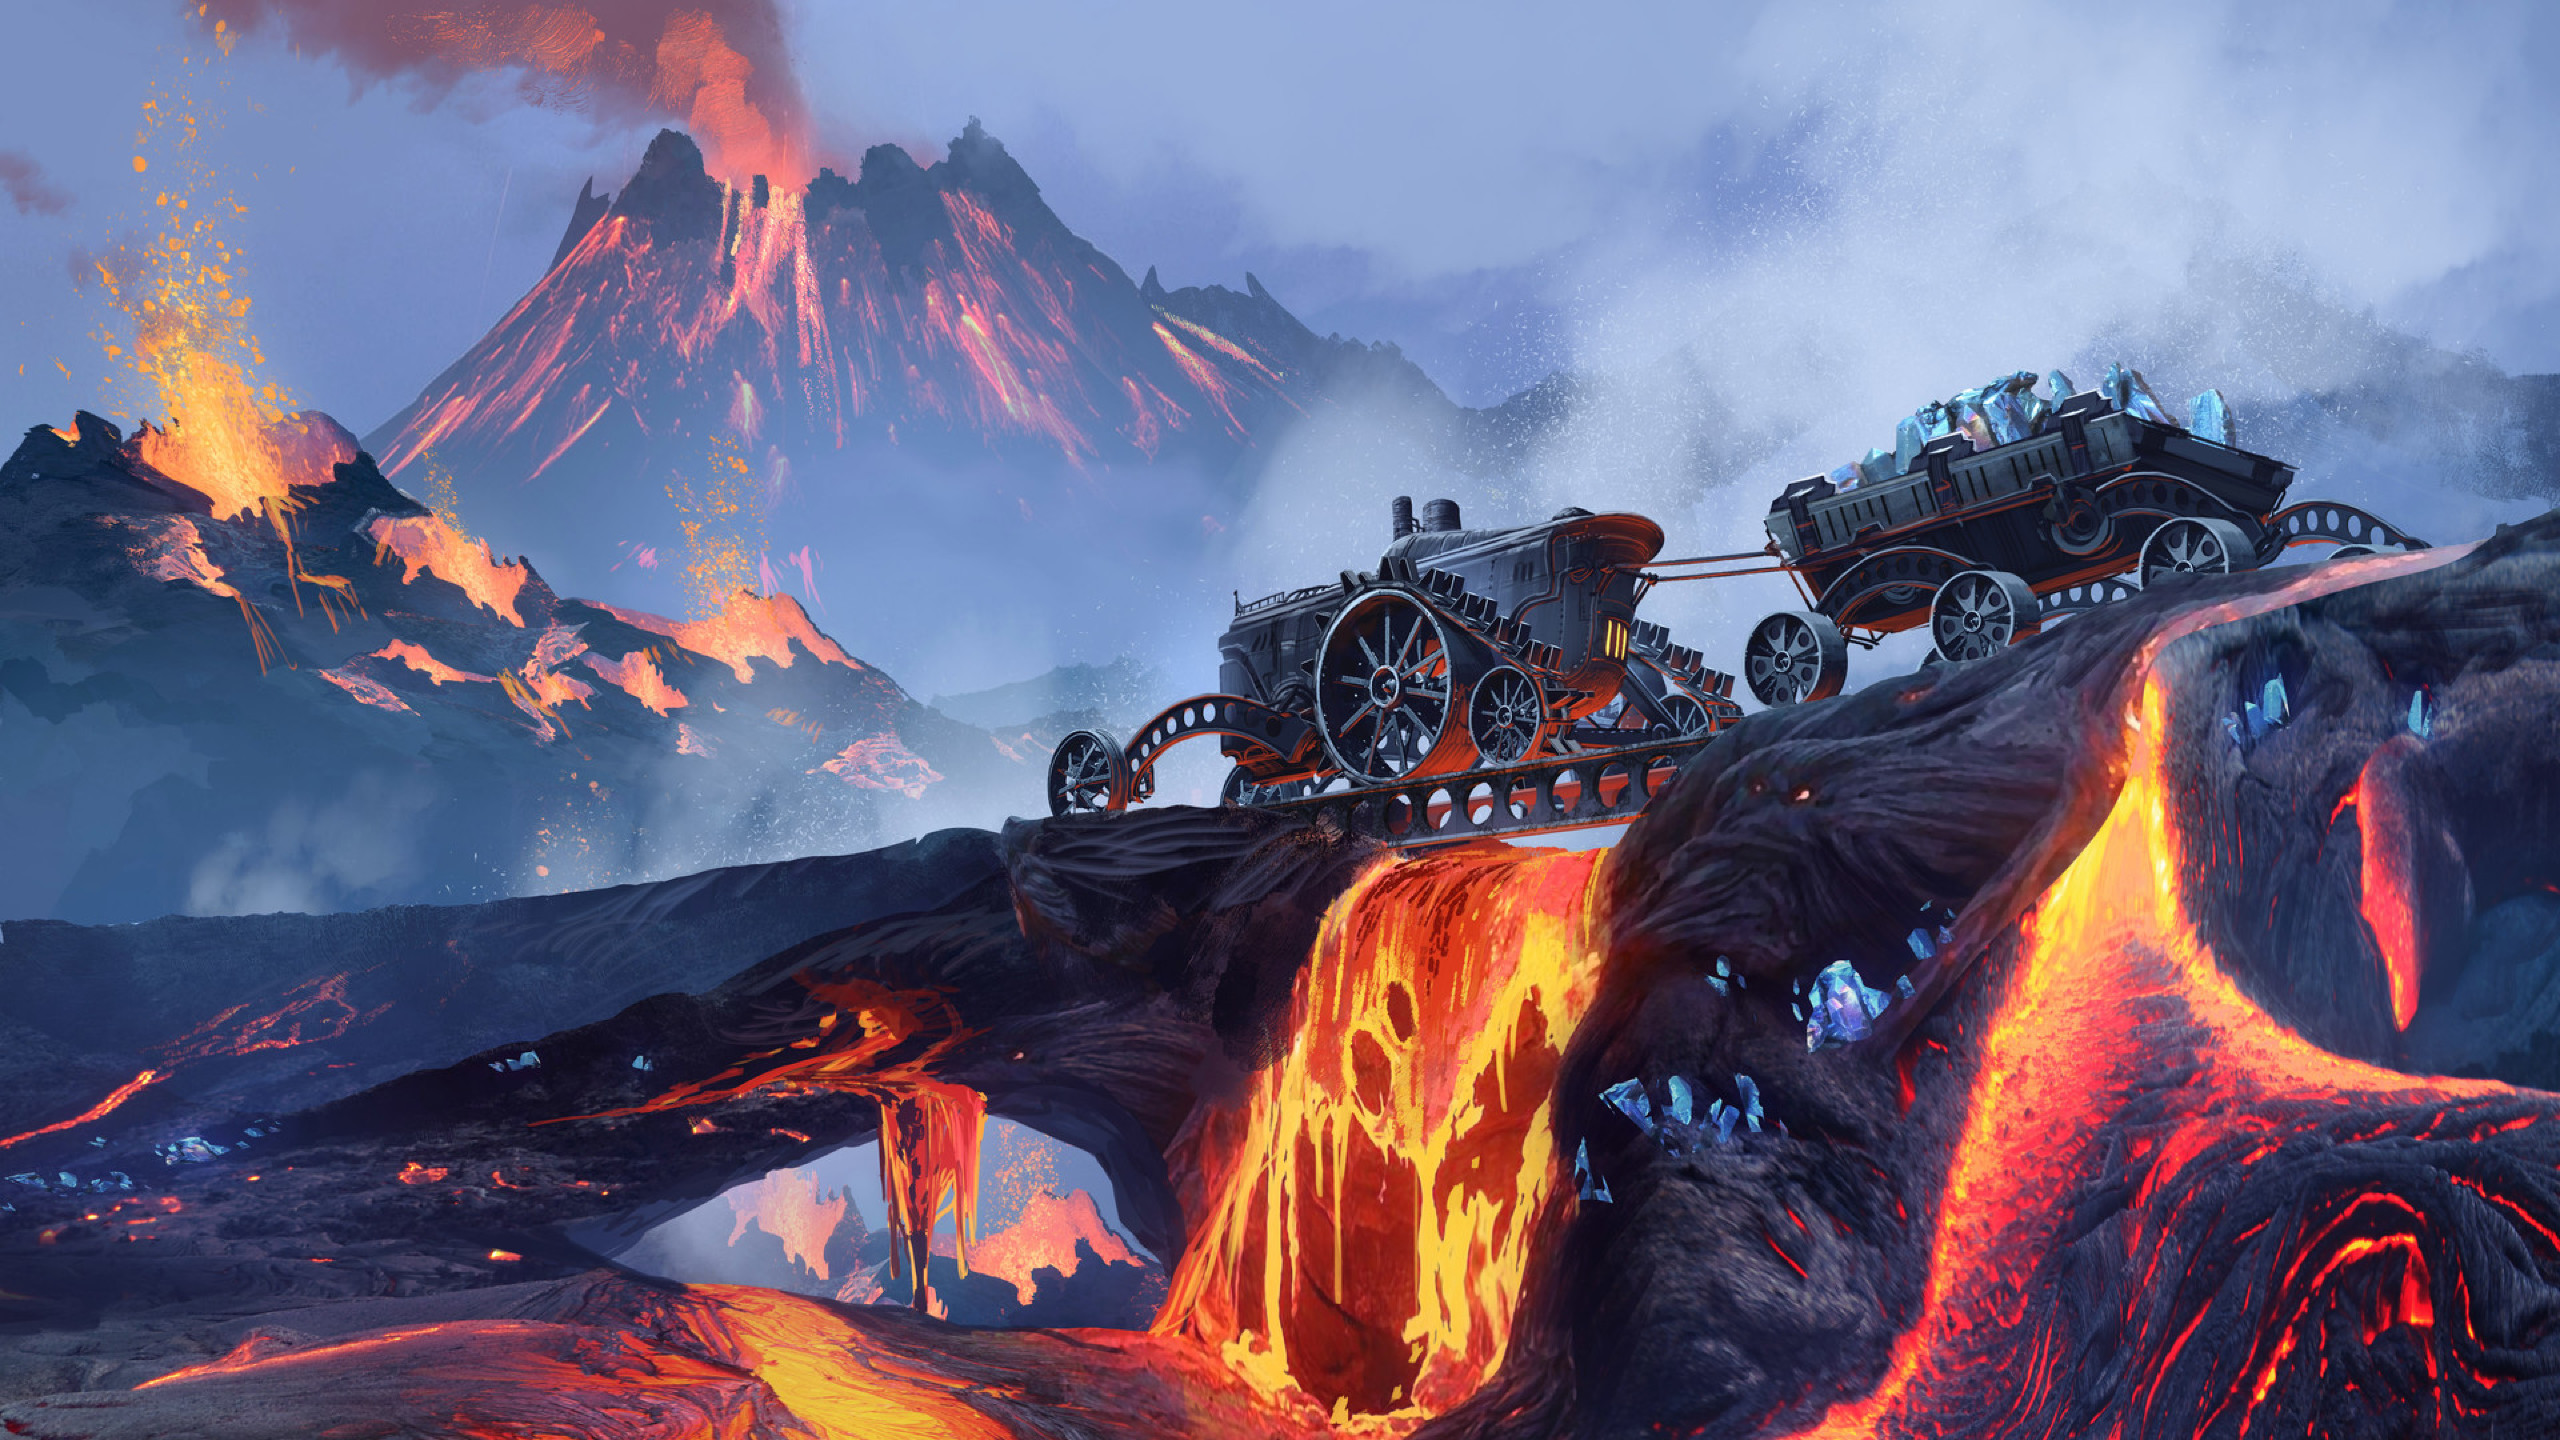 2560x1440 Scifi Steampunk Mountain Vehicle Mining Lava 1440p Resolution Wallpaper Hd Other 4k Wallpapers Images Photos And Background